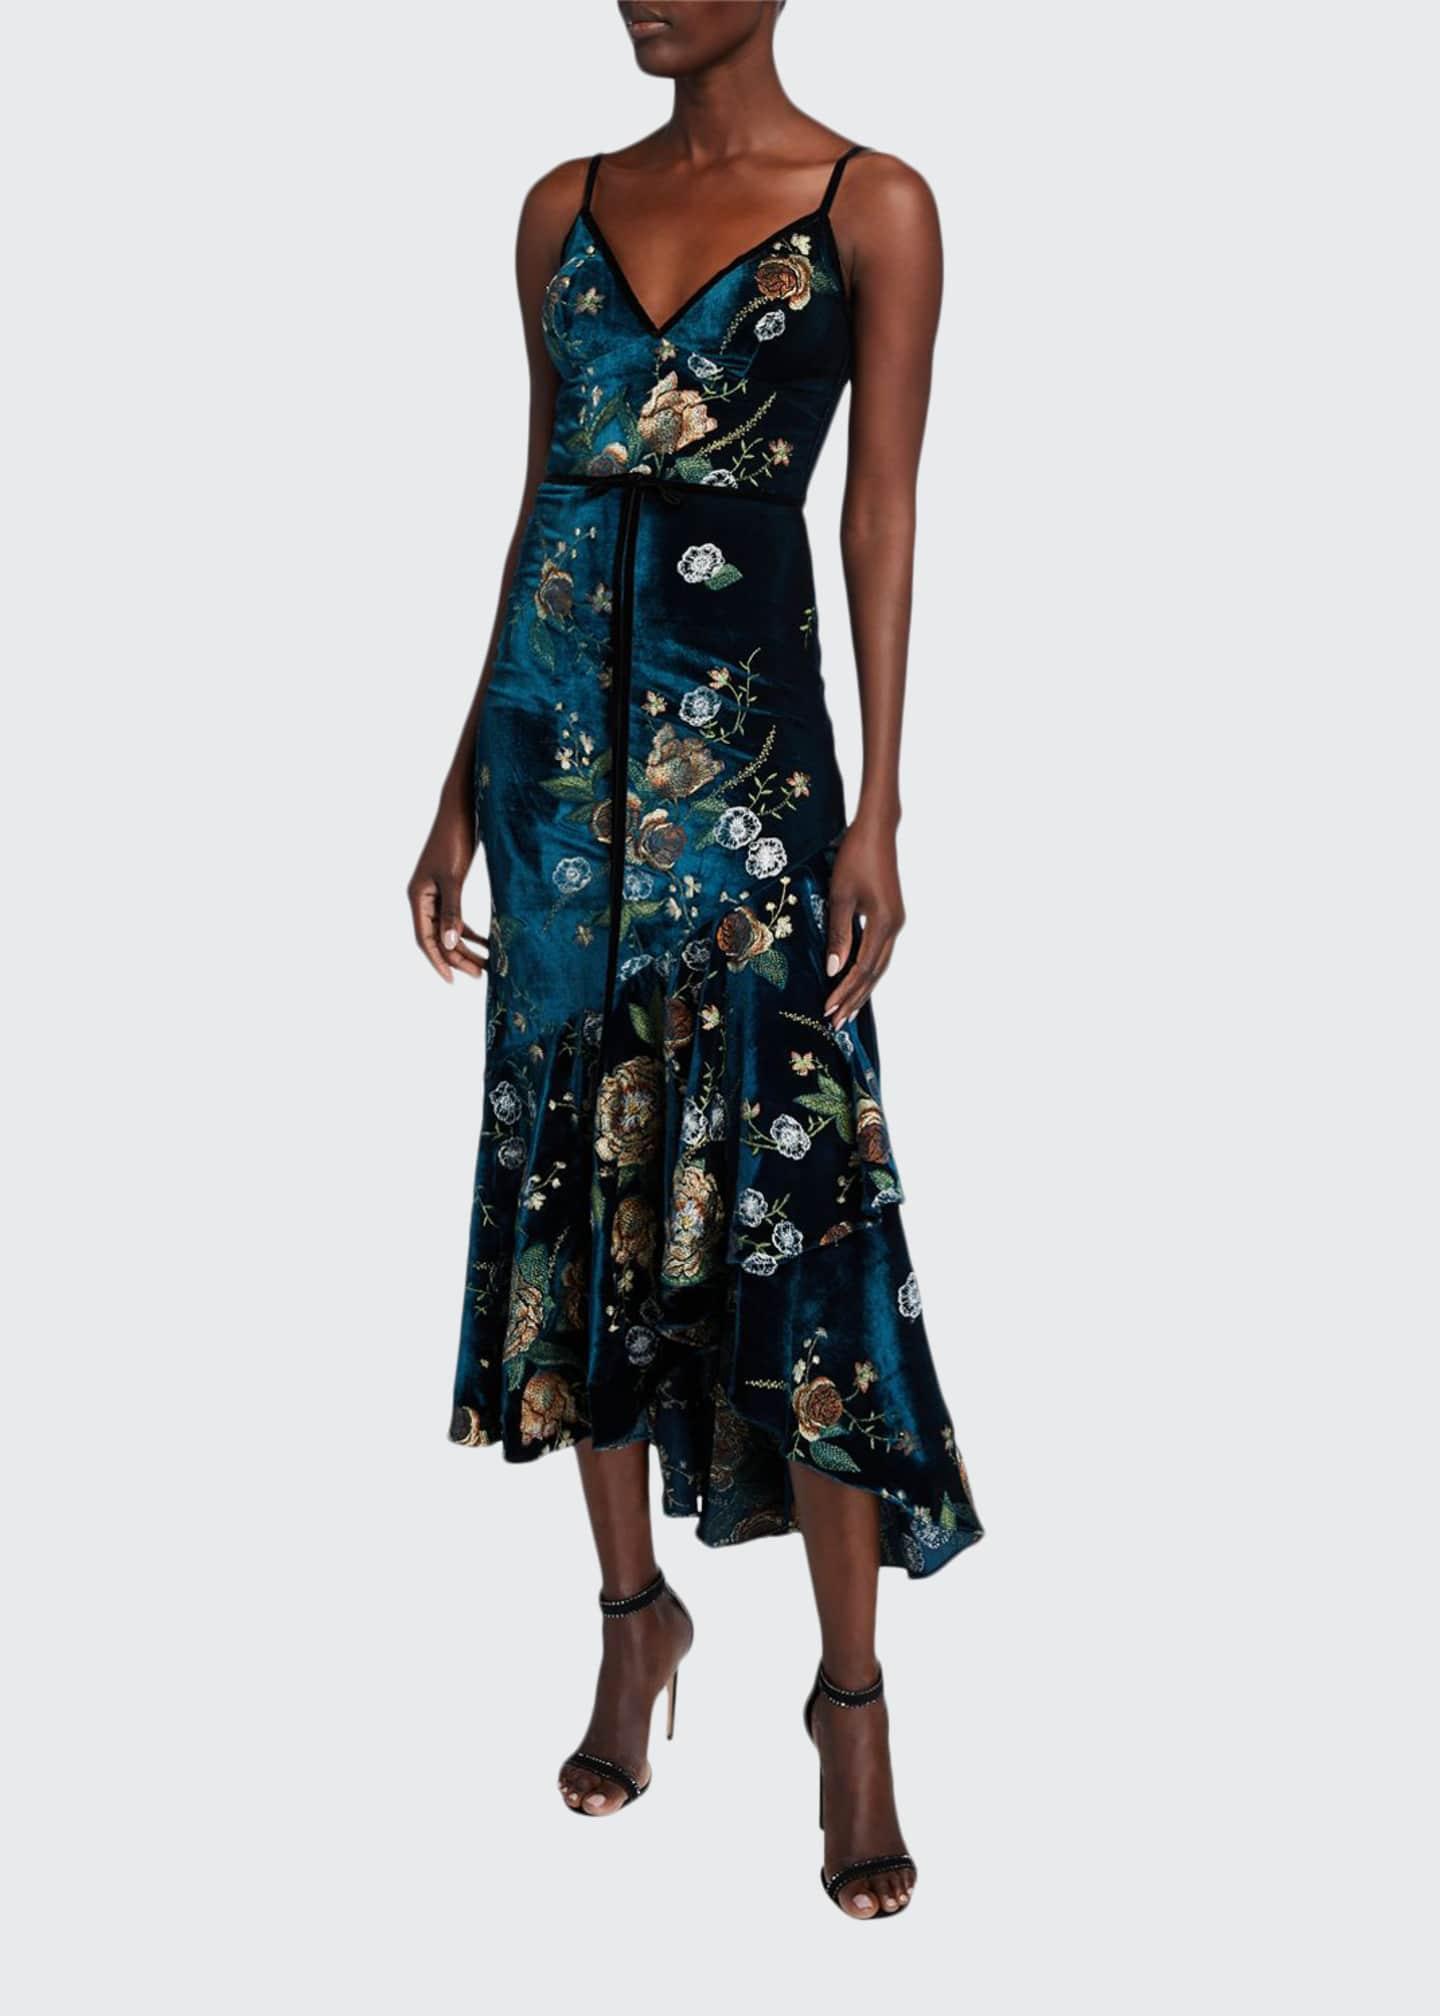 Marchesa Notte Embroidered High-Low Sleeveless Velvet Cocktail